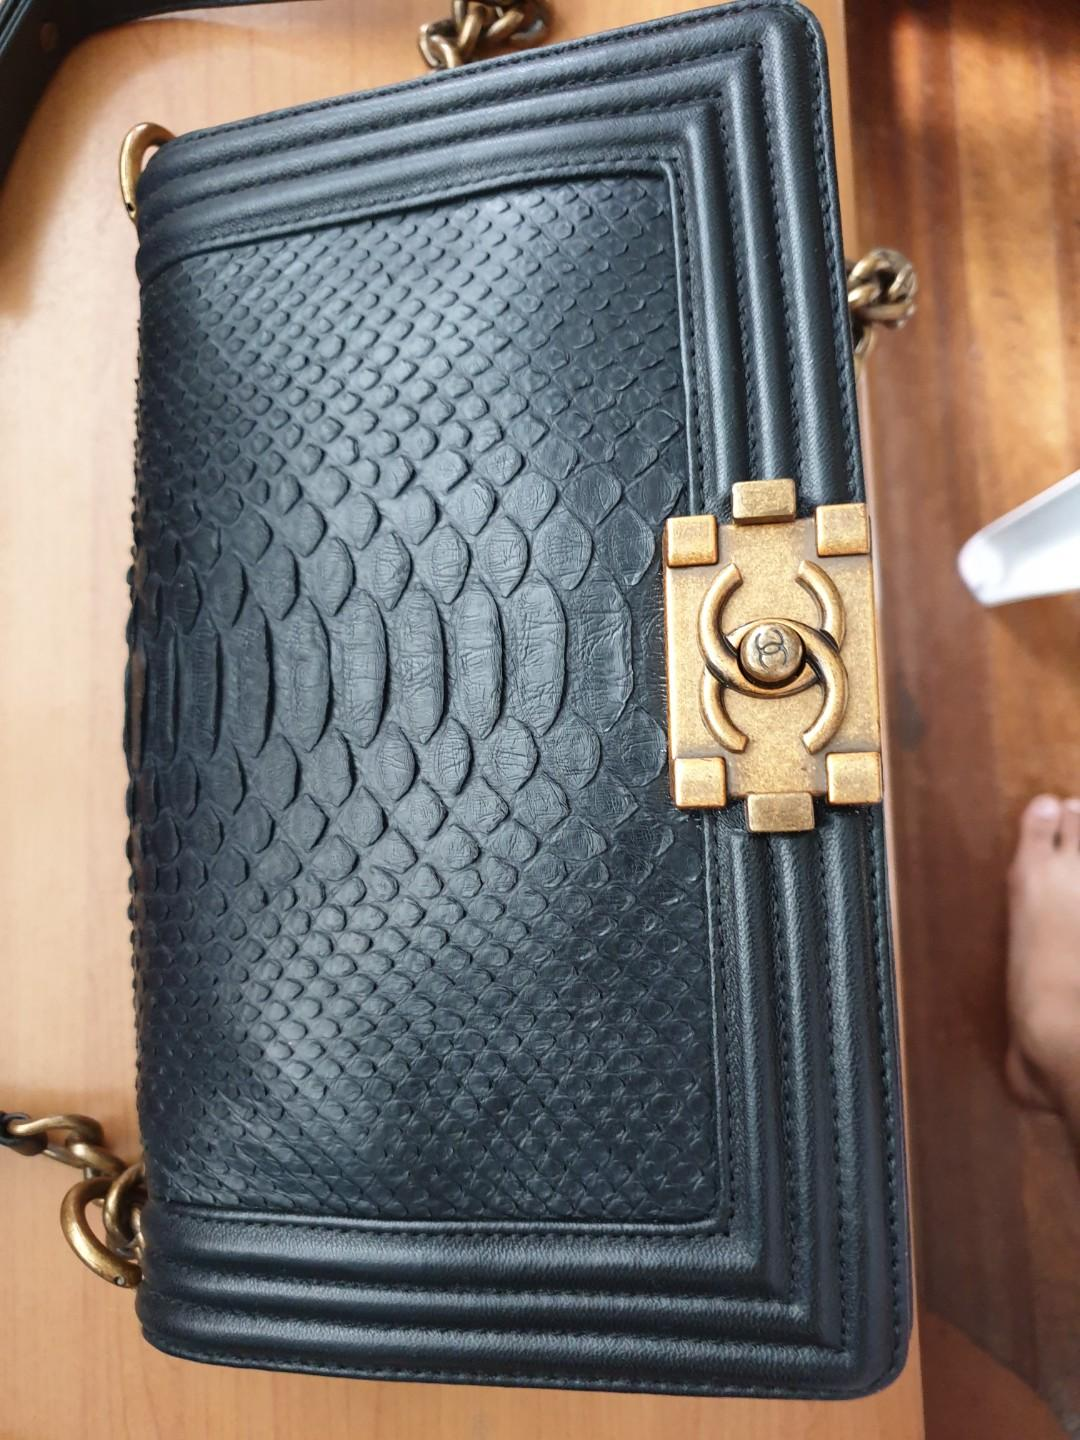 SALE!!! Chanel Le Boy Exotic Python Medium from 13k, Luxury, Bags & Wallets  on Carousell